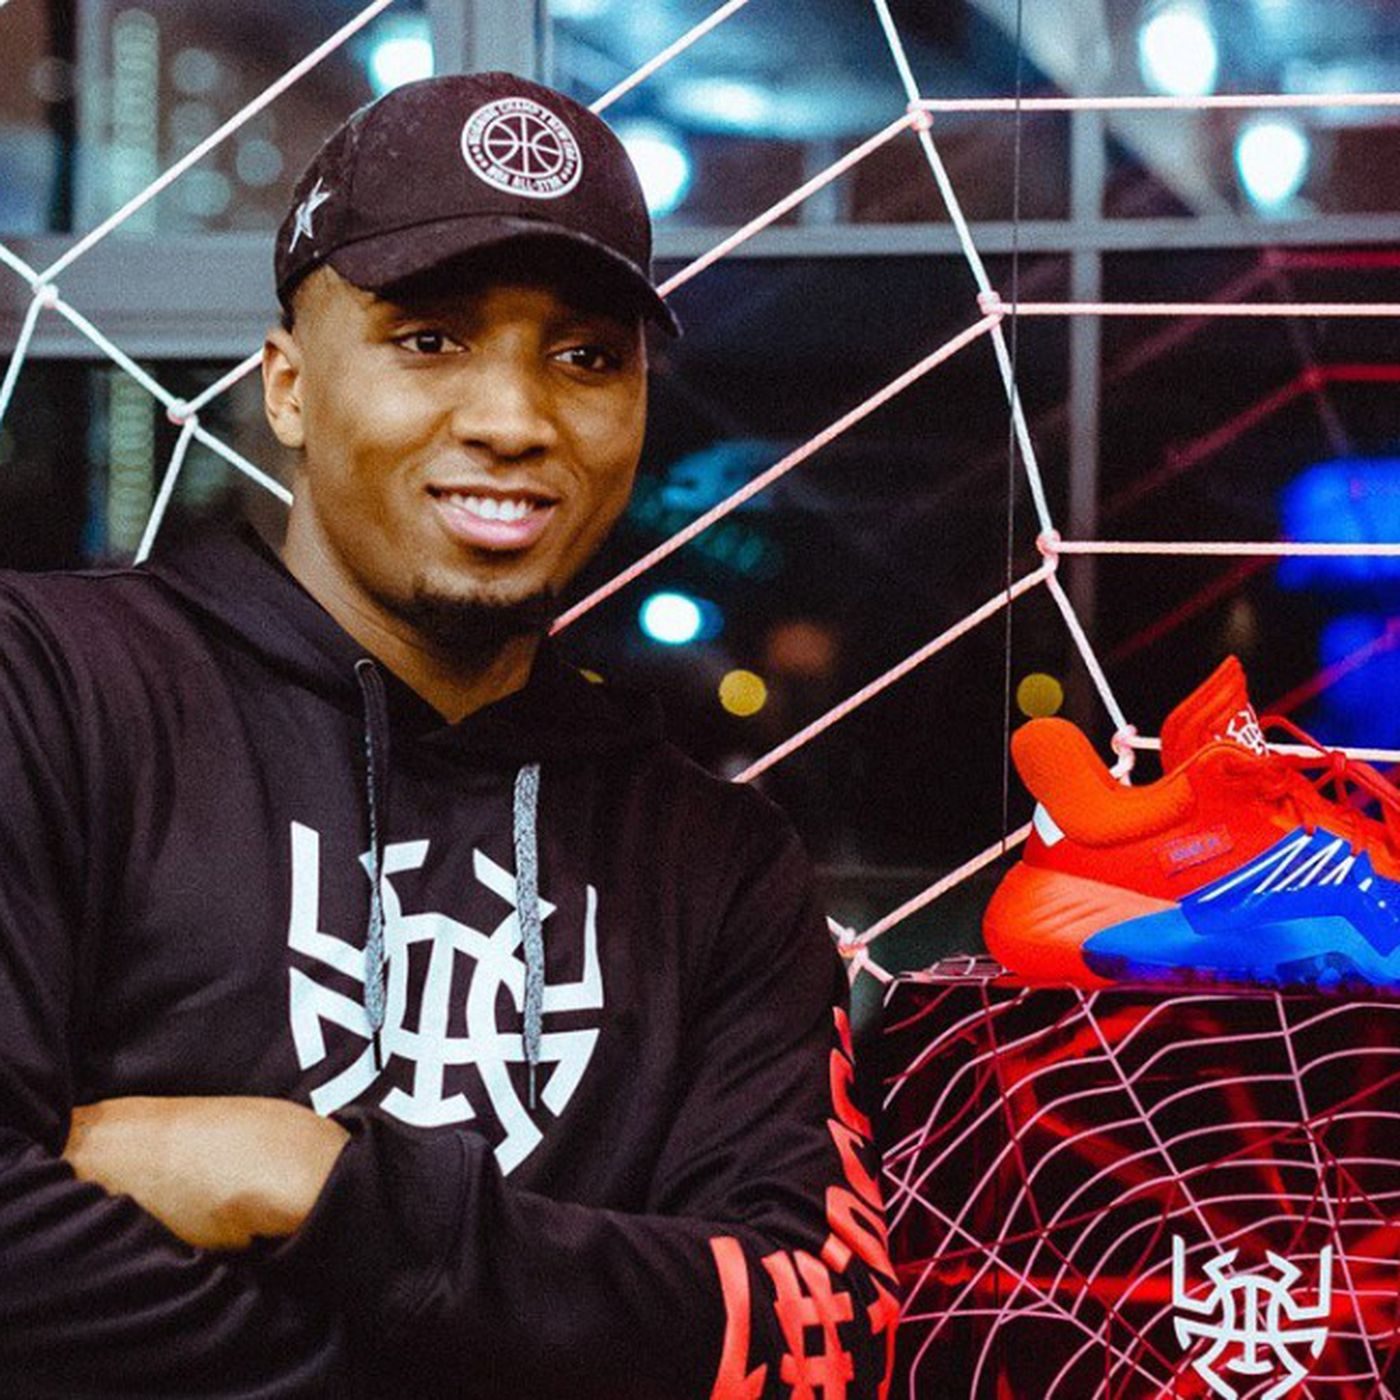 online store bcc49 e640c Donovan Mitchell and Adidas unveil signature shoe D.O.N. Issue 1